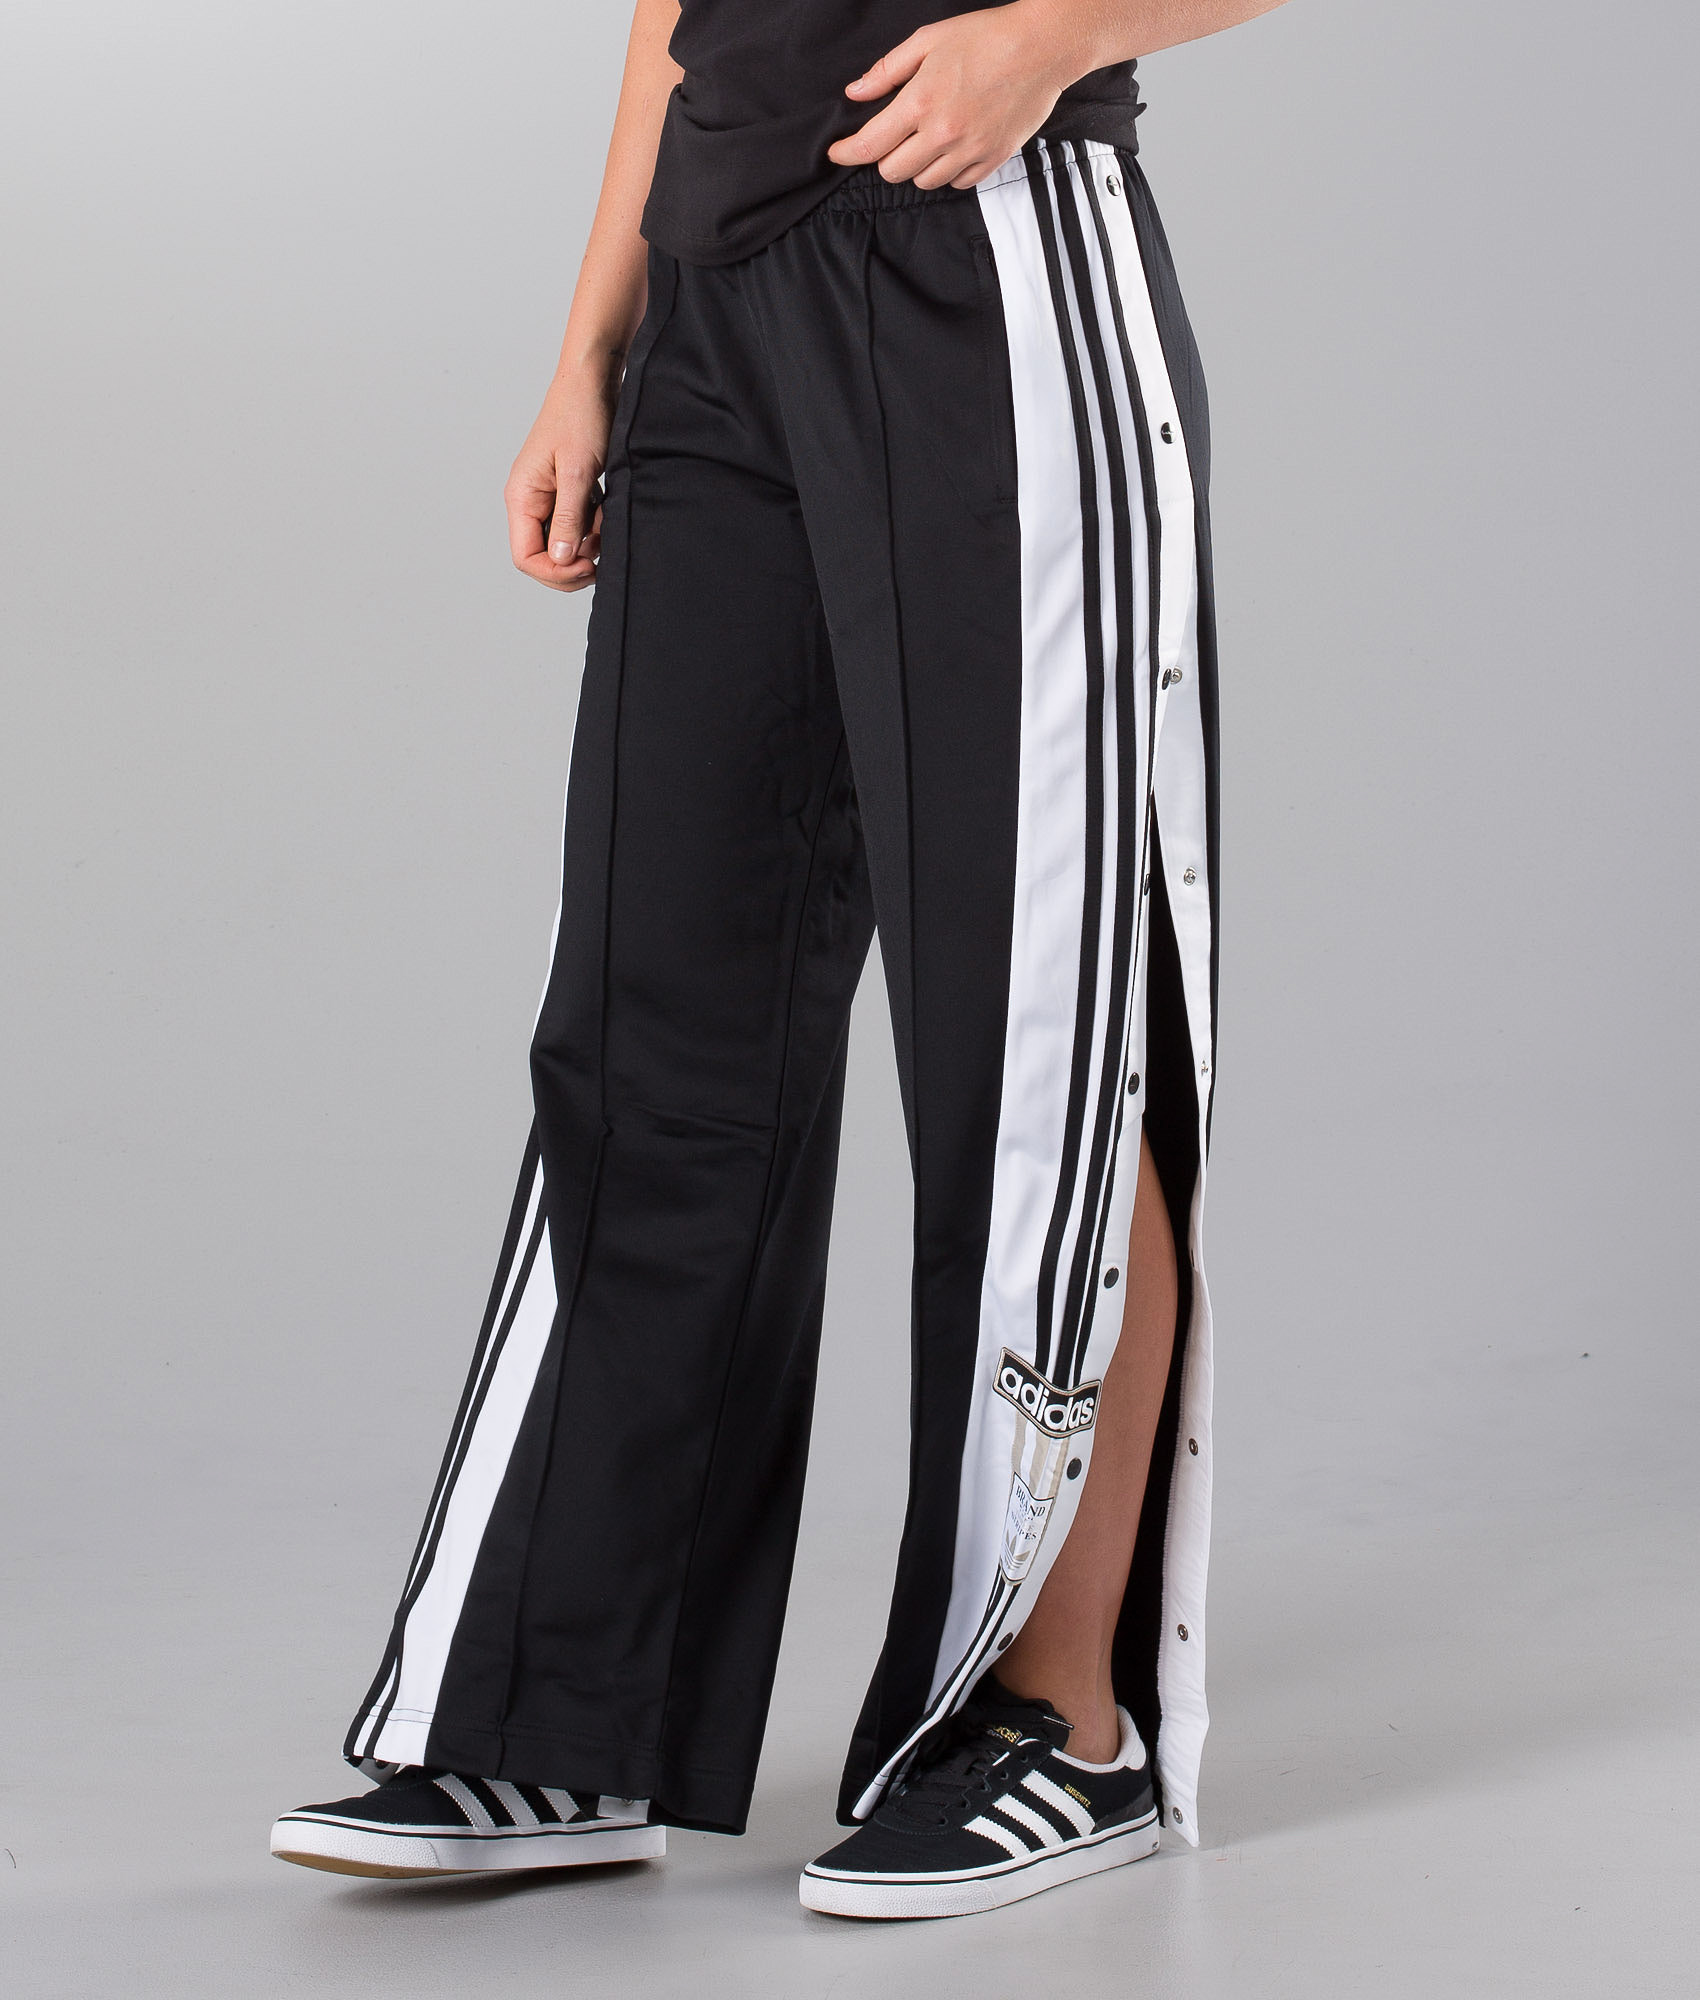 Adidas Originals Adibreak Pants Black Carbon - Ridestore.com 38b3fc17737